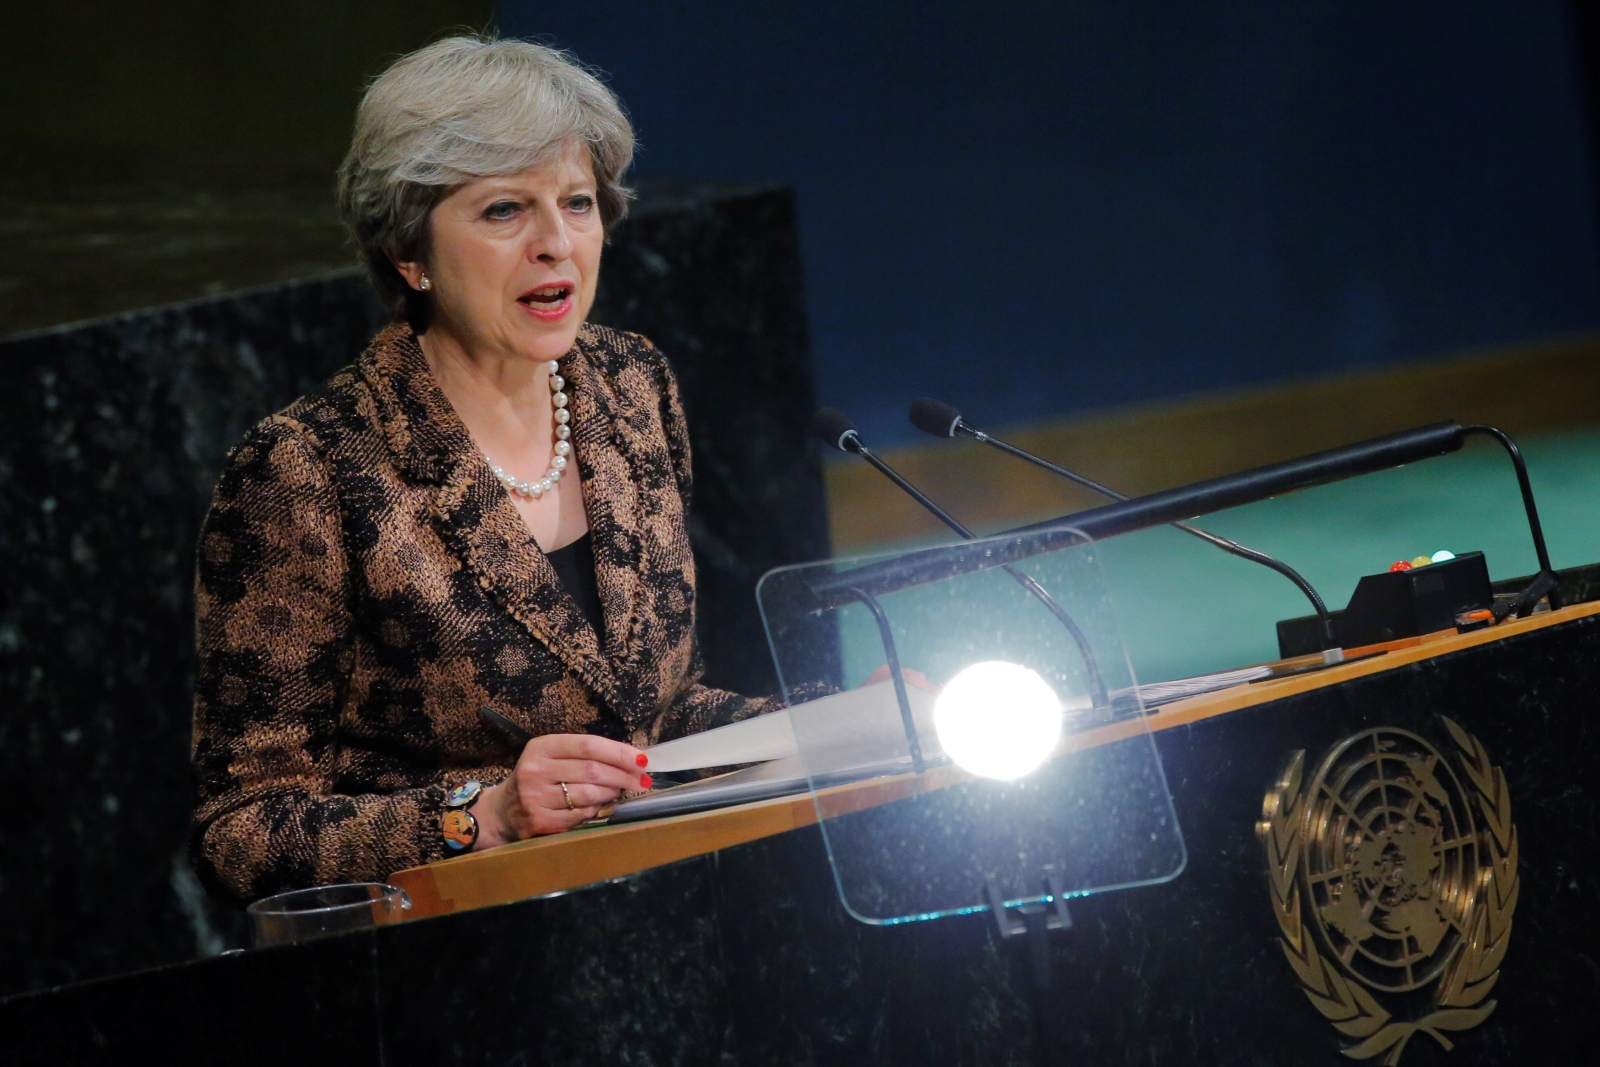 theresa-may-urges-tech-firms-to-stop-spread-of-extremism-online